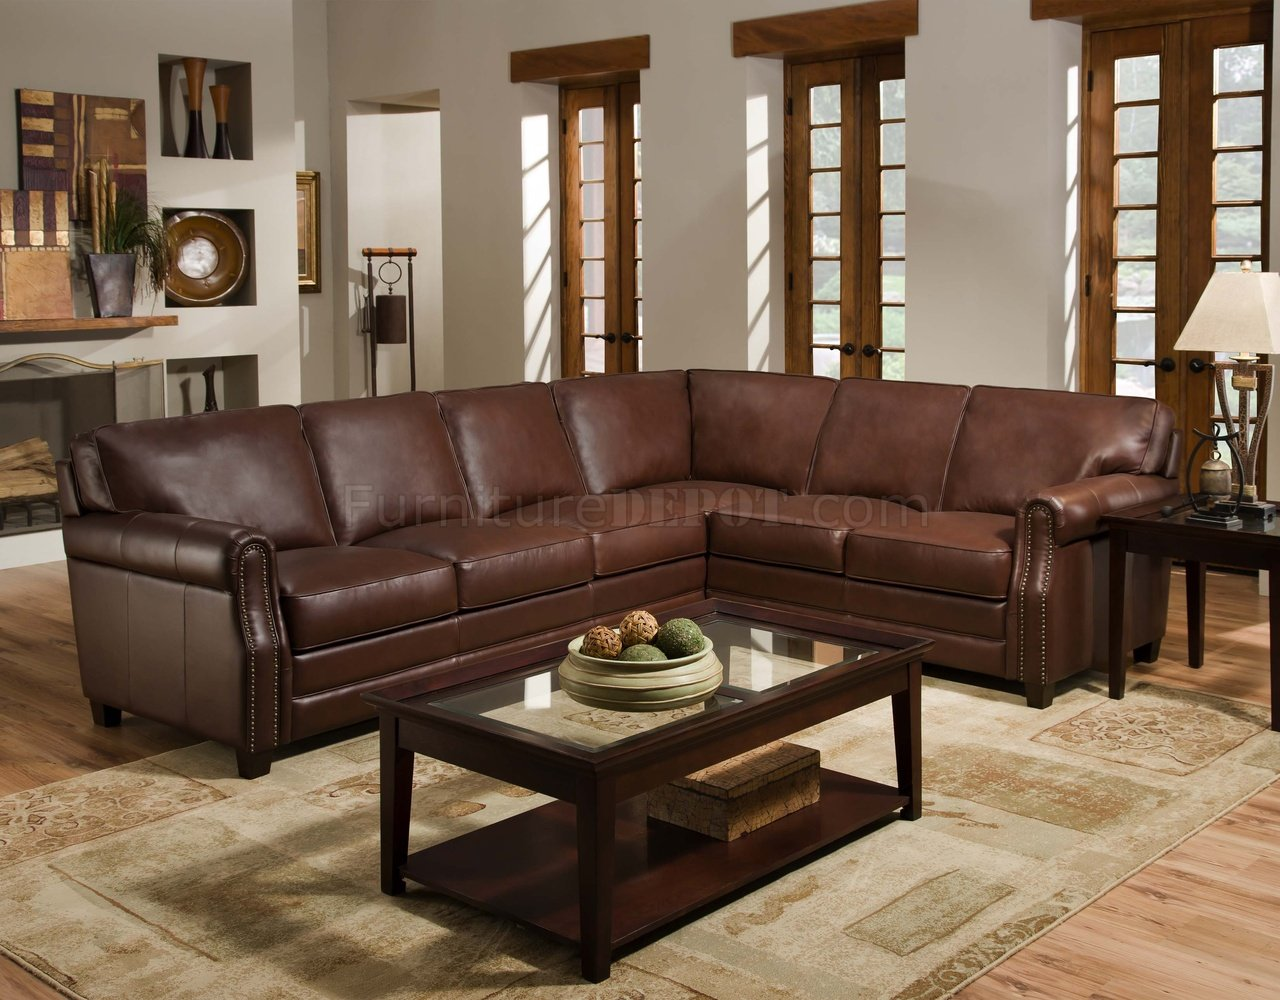 traditional leather sectional sofas sofa mart brownsville tx cocoa brown top grain italian